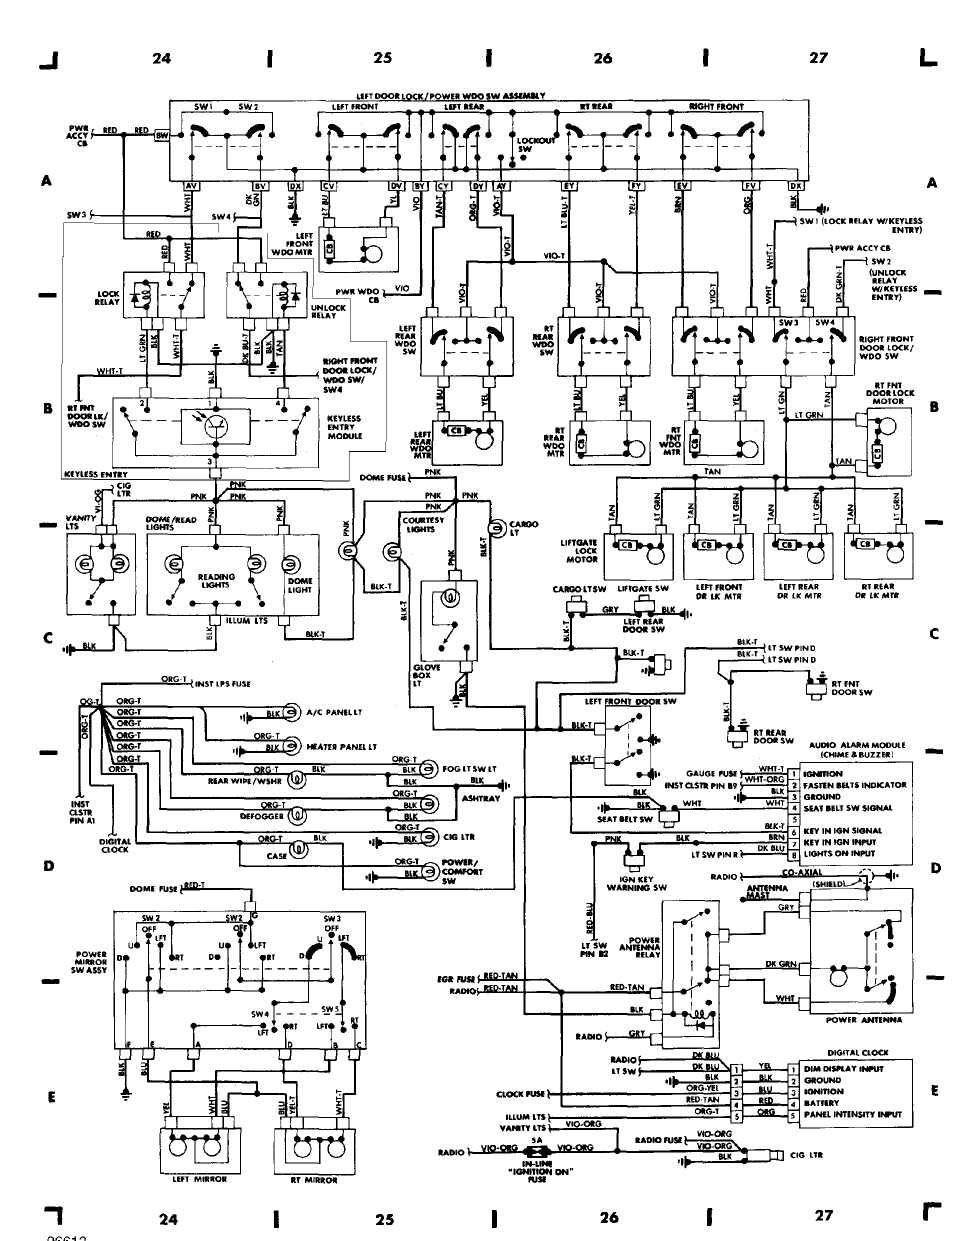 wiring_diagrams_html_61f5e0ad wiring diagrams 1984 1991 jeep cherokee (xj) jeep 95 jeep cherokee wiring diagram at edmiracle.co